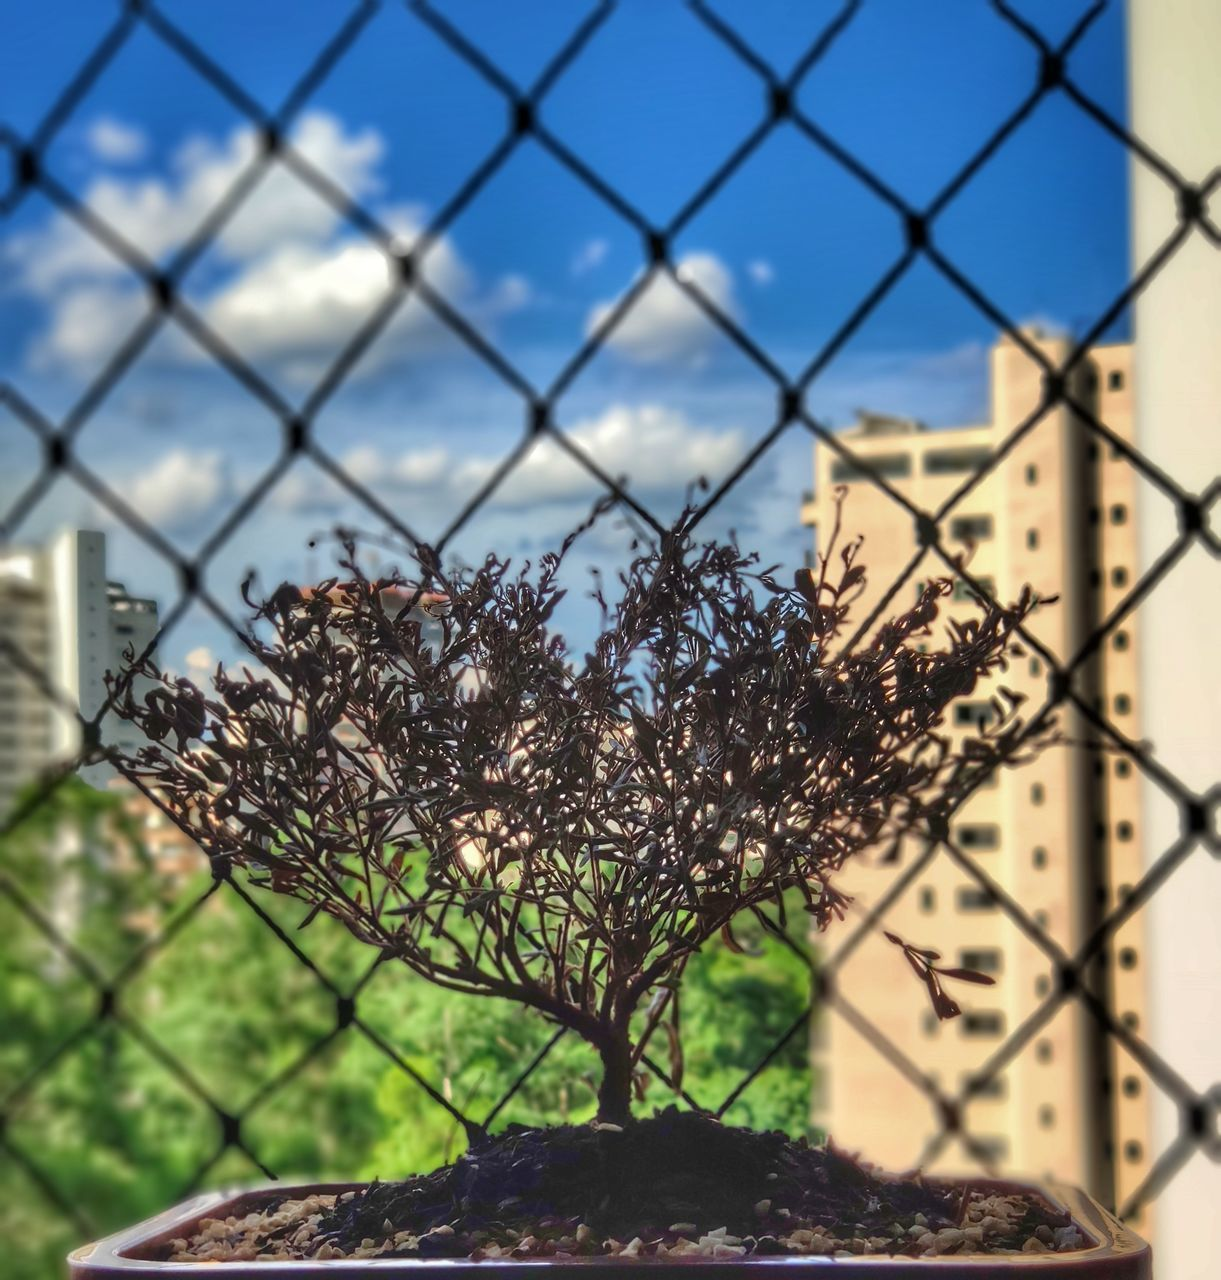 fence, focus on foreground, no people, security, protection, nature, metal, safety, chainlink fence, boundary, day, close-up, sky, barrier, plant, growth, outdoors, pattern, sunlight, architecture